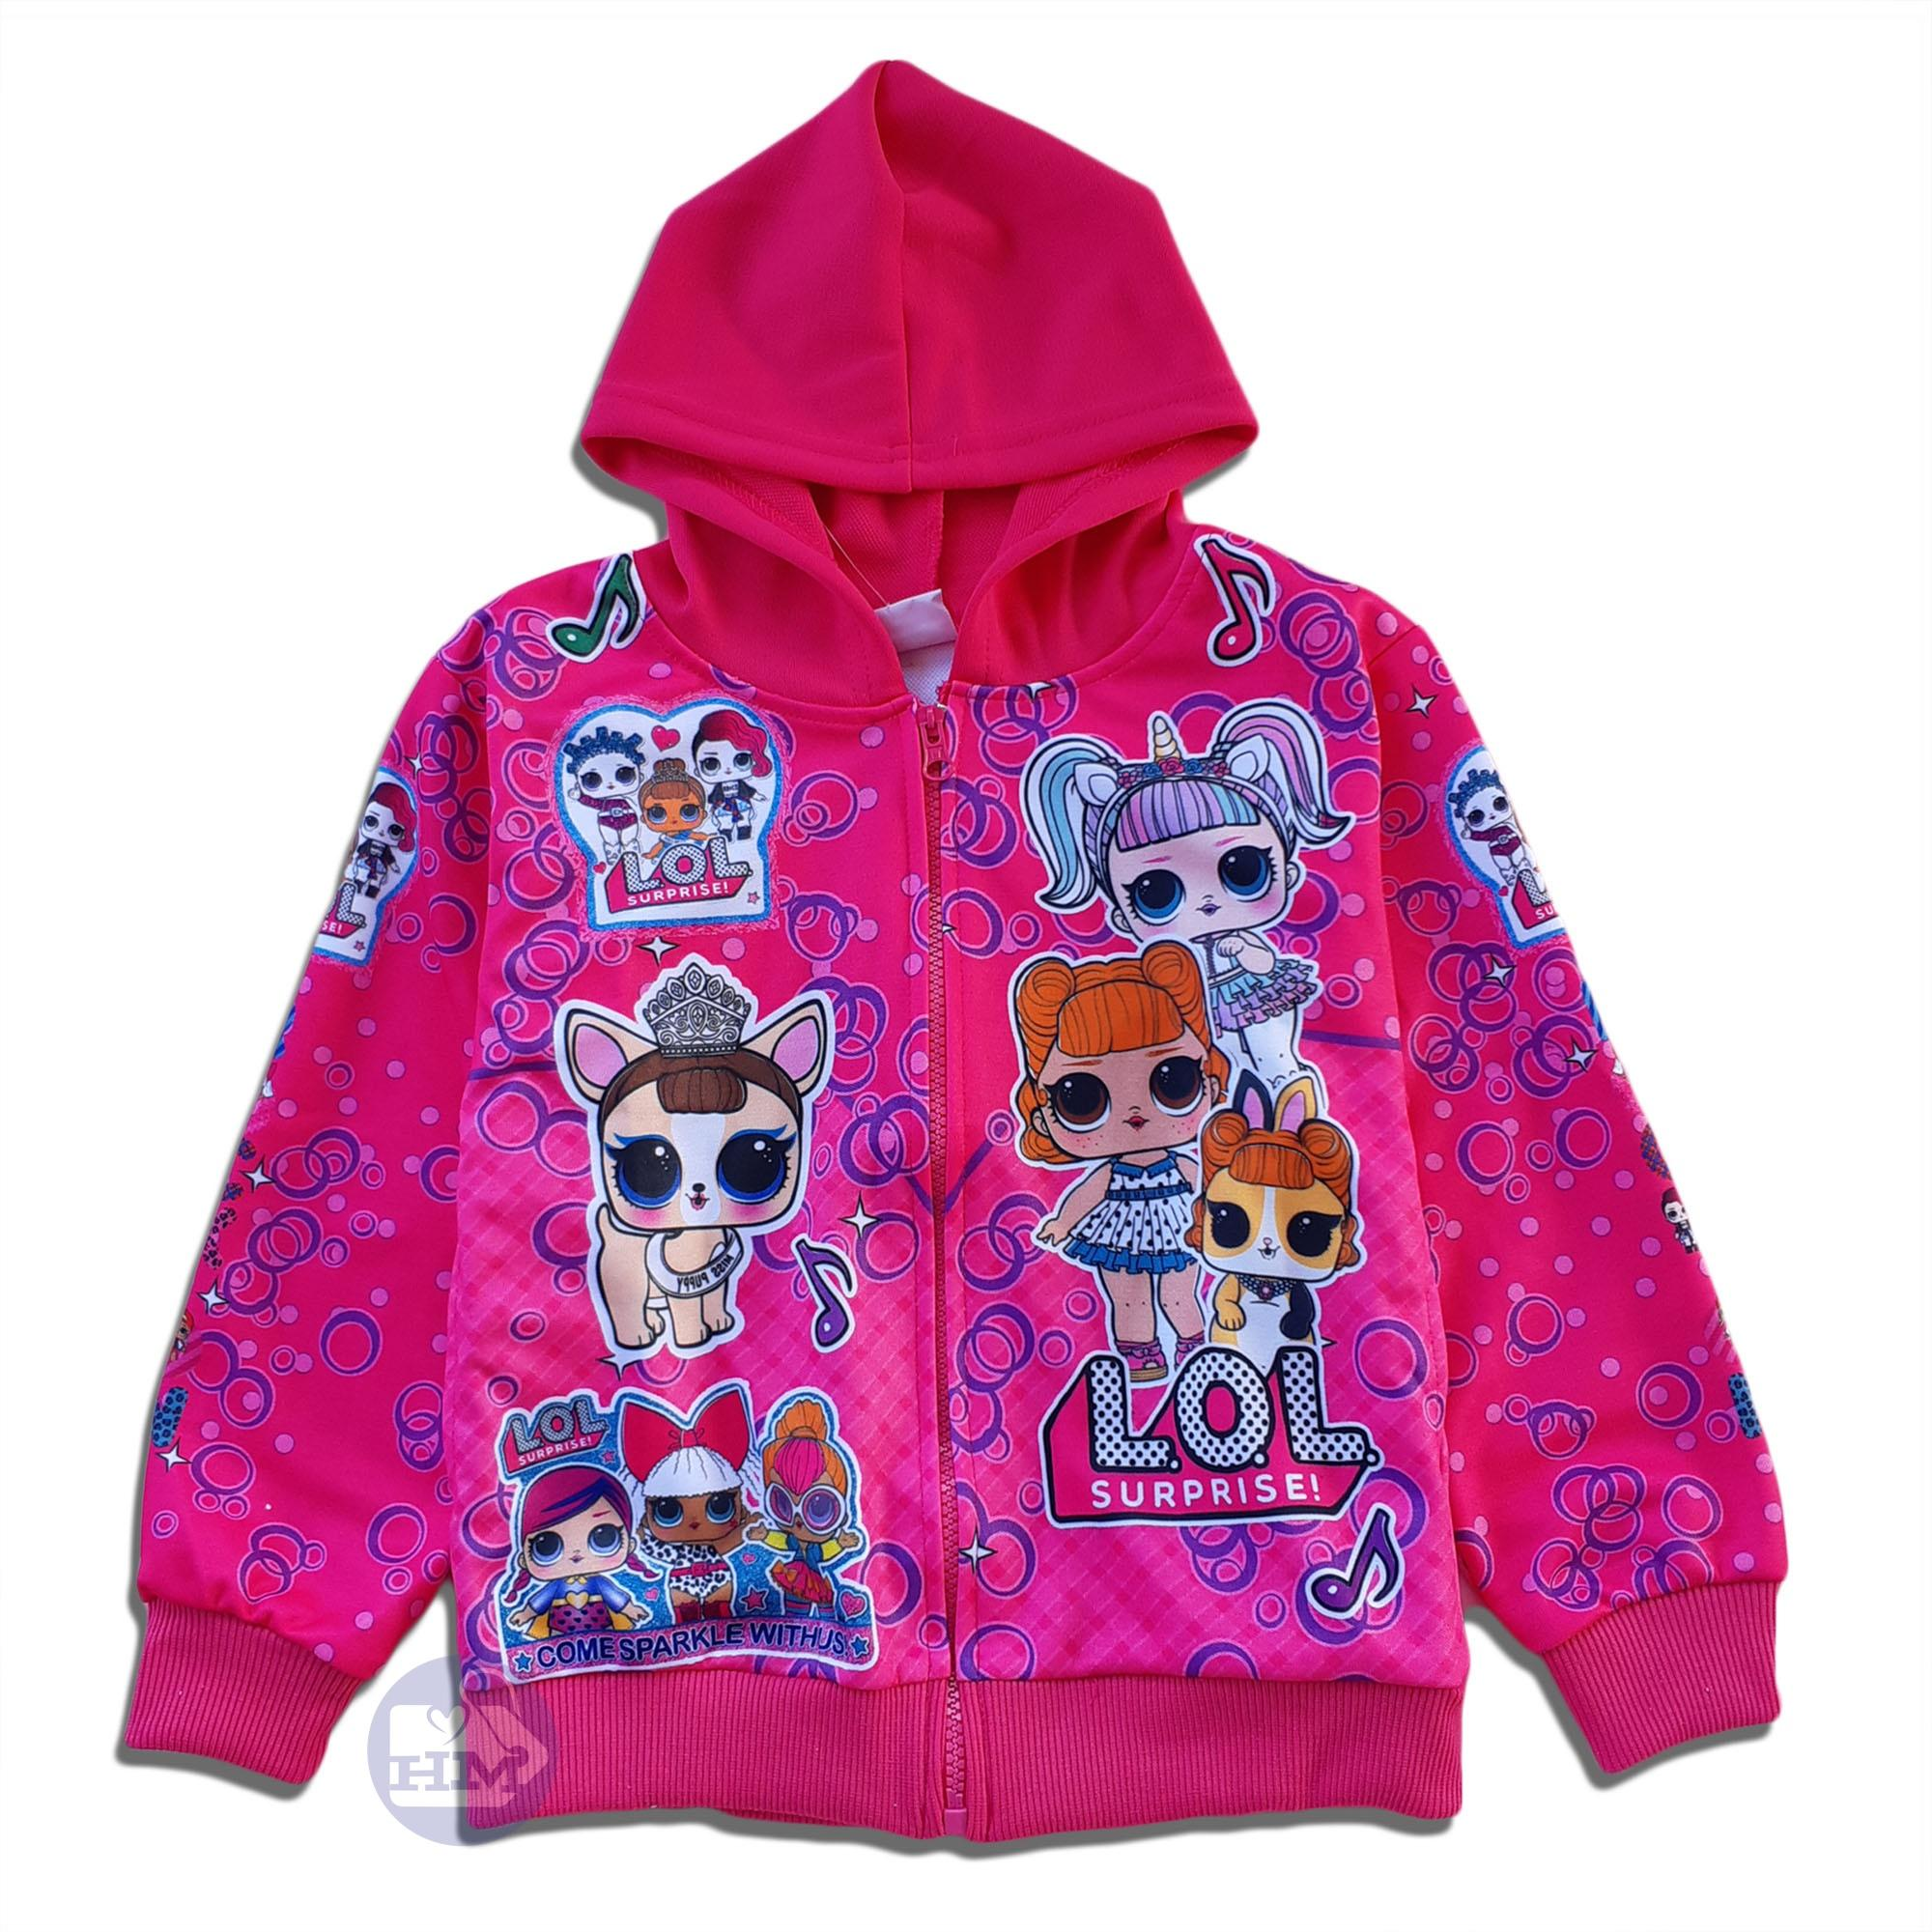 Hm Jaket Anak Lol Surprise Jaket Anak Trendy By Hm Shopa Collection.